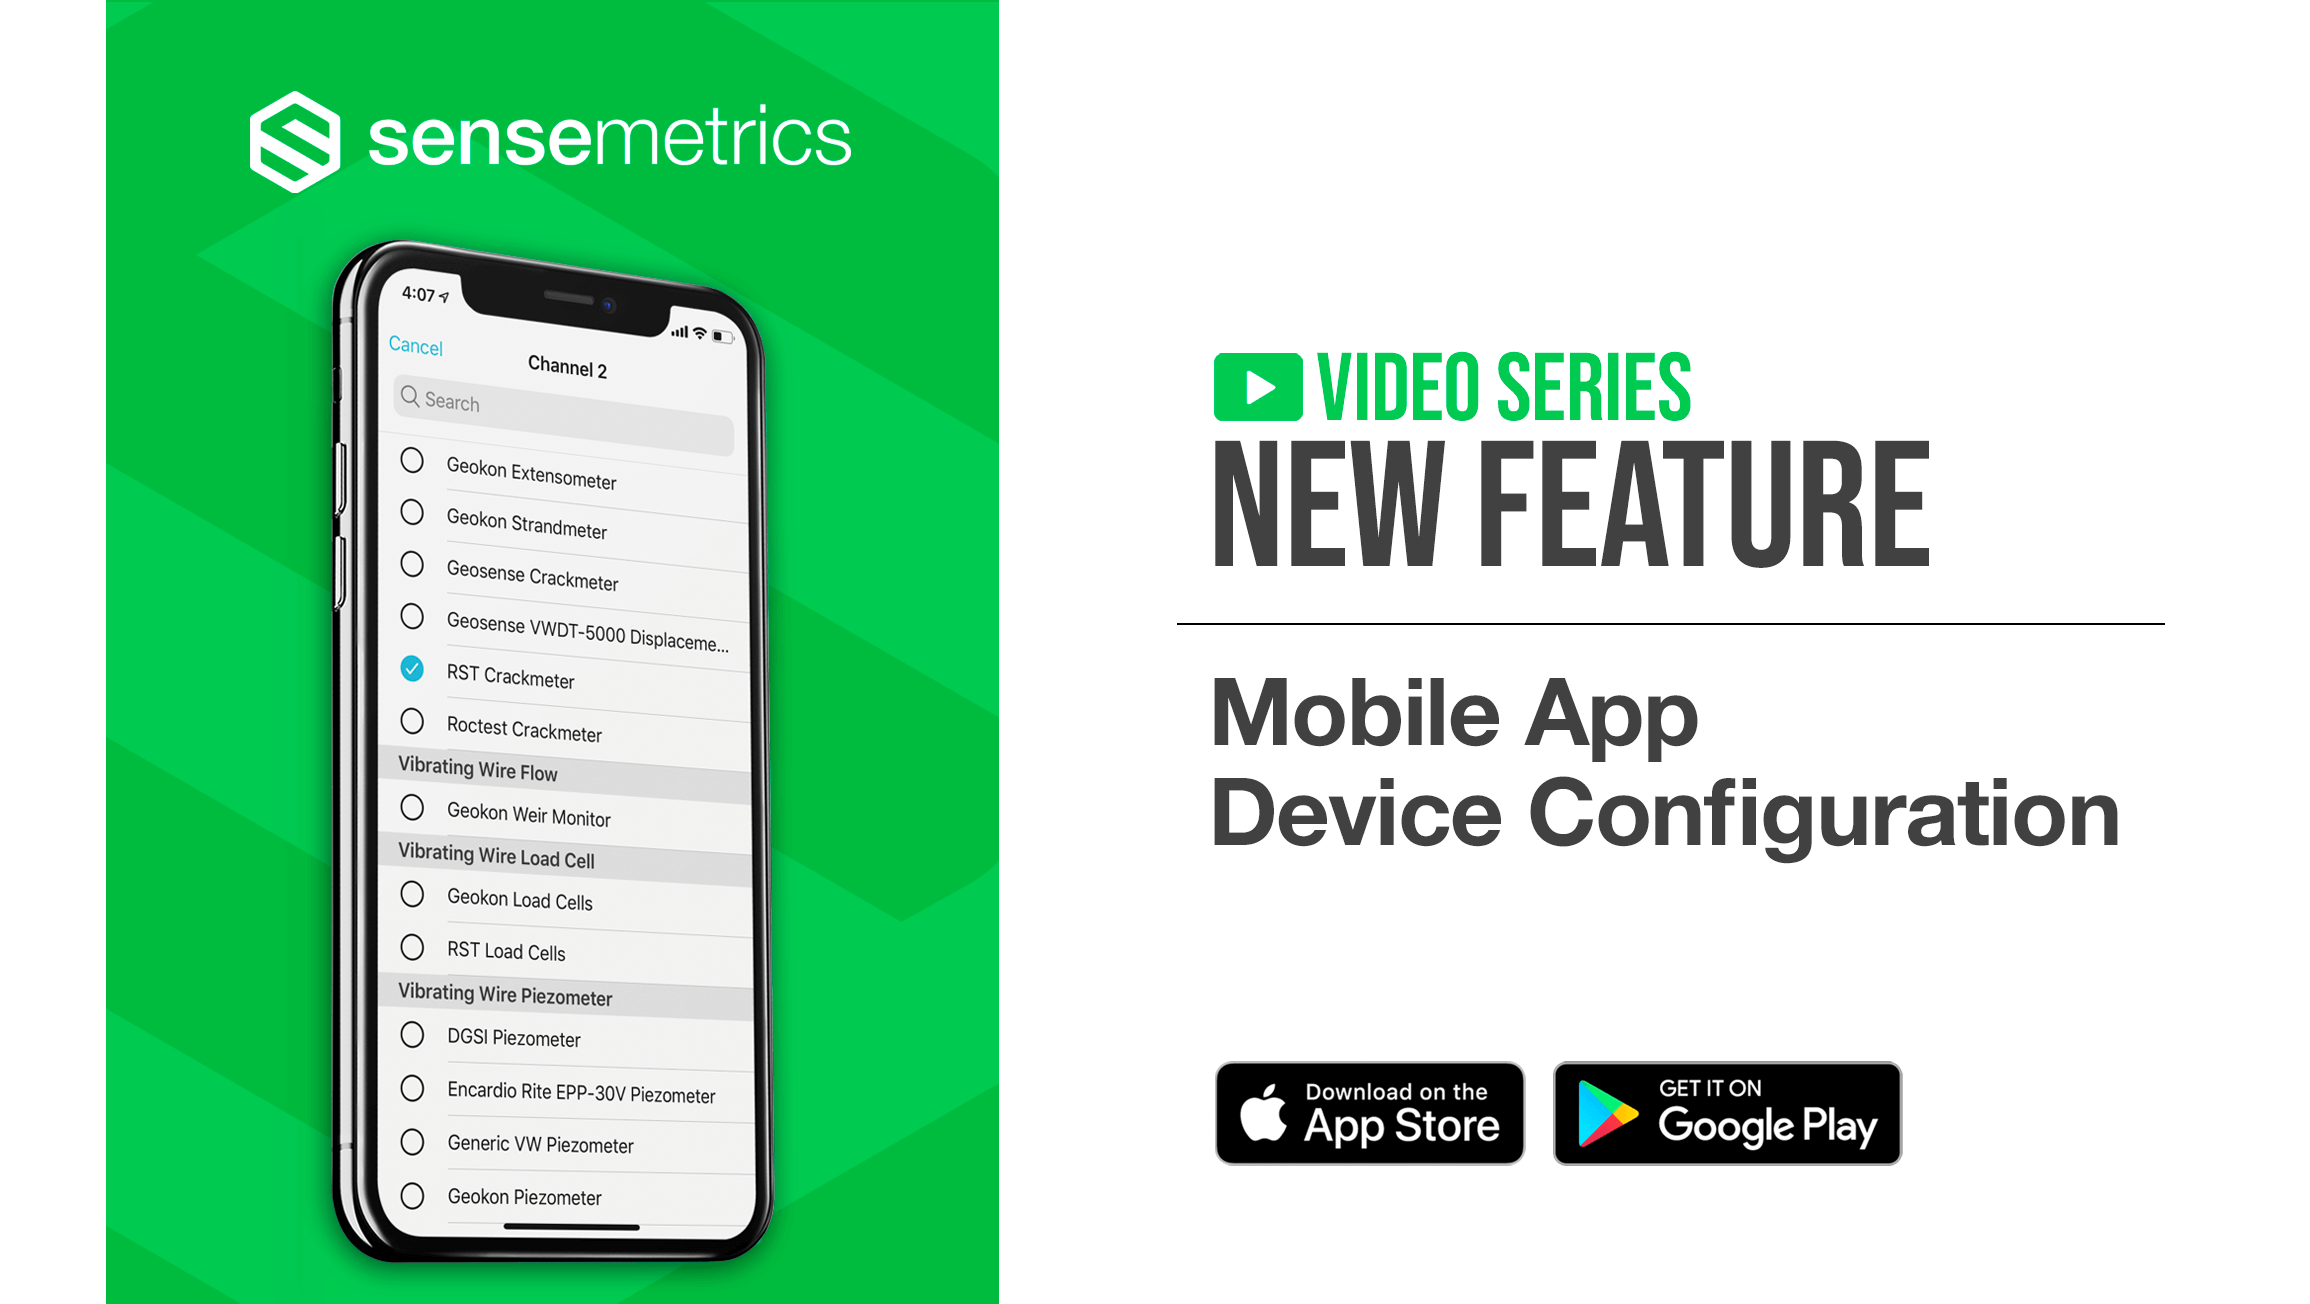 New Mobile App Feature: Device Configuration